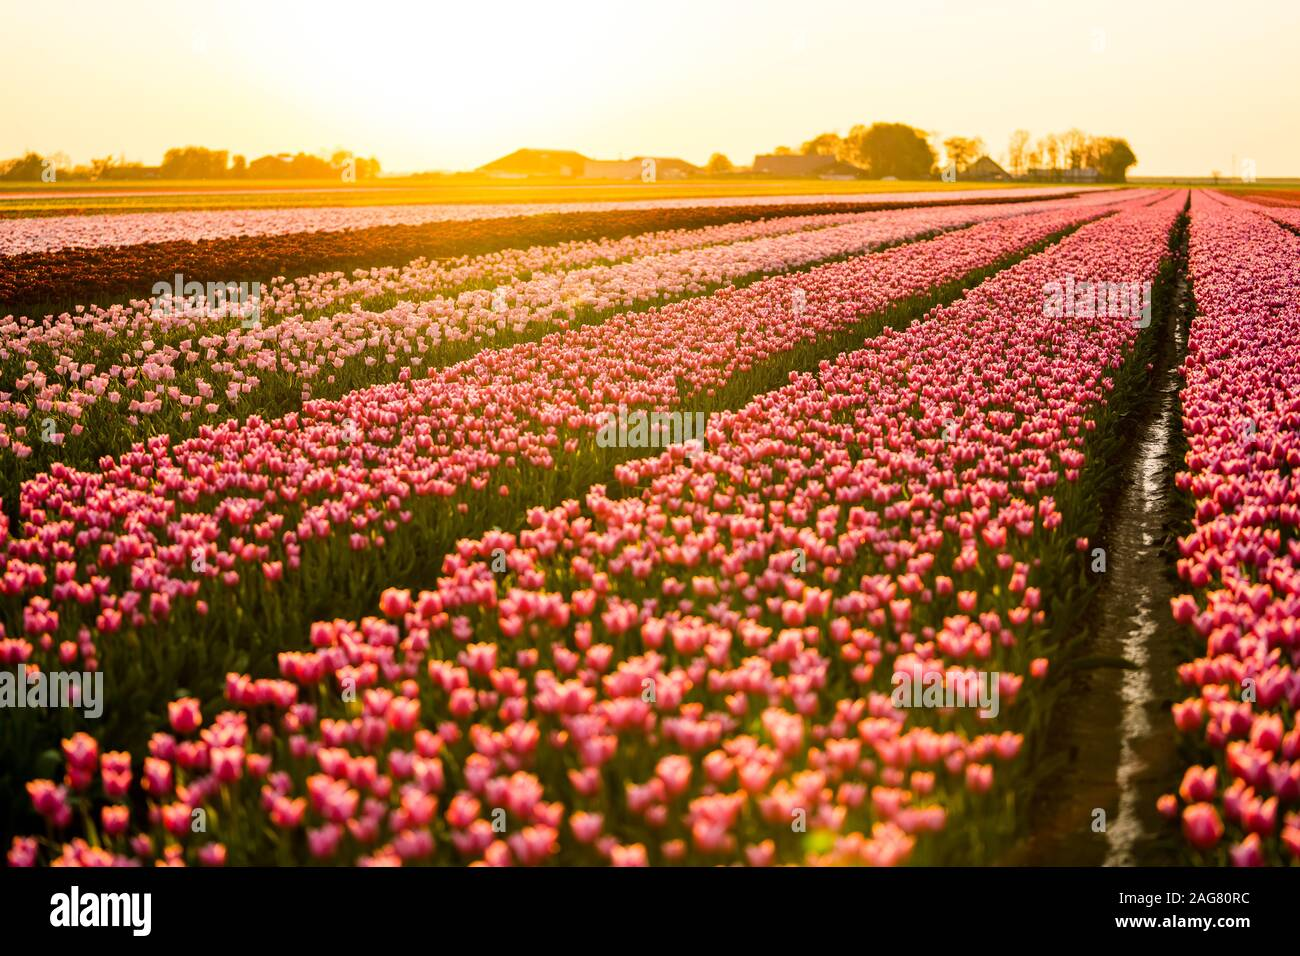 A Beautiful Scenery Of A Tulips Field Under The Sunset Sky Great For A Cool Natural Background Stock Photo Alamy